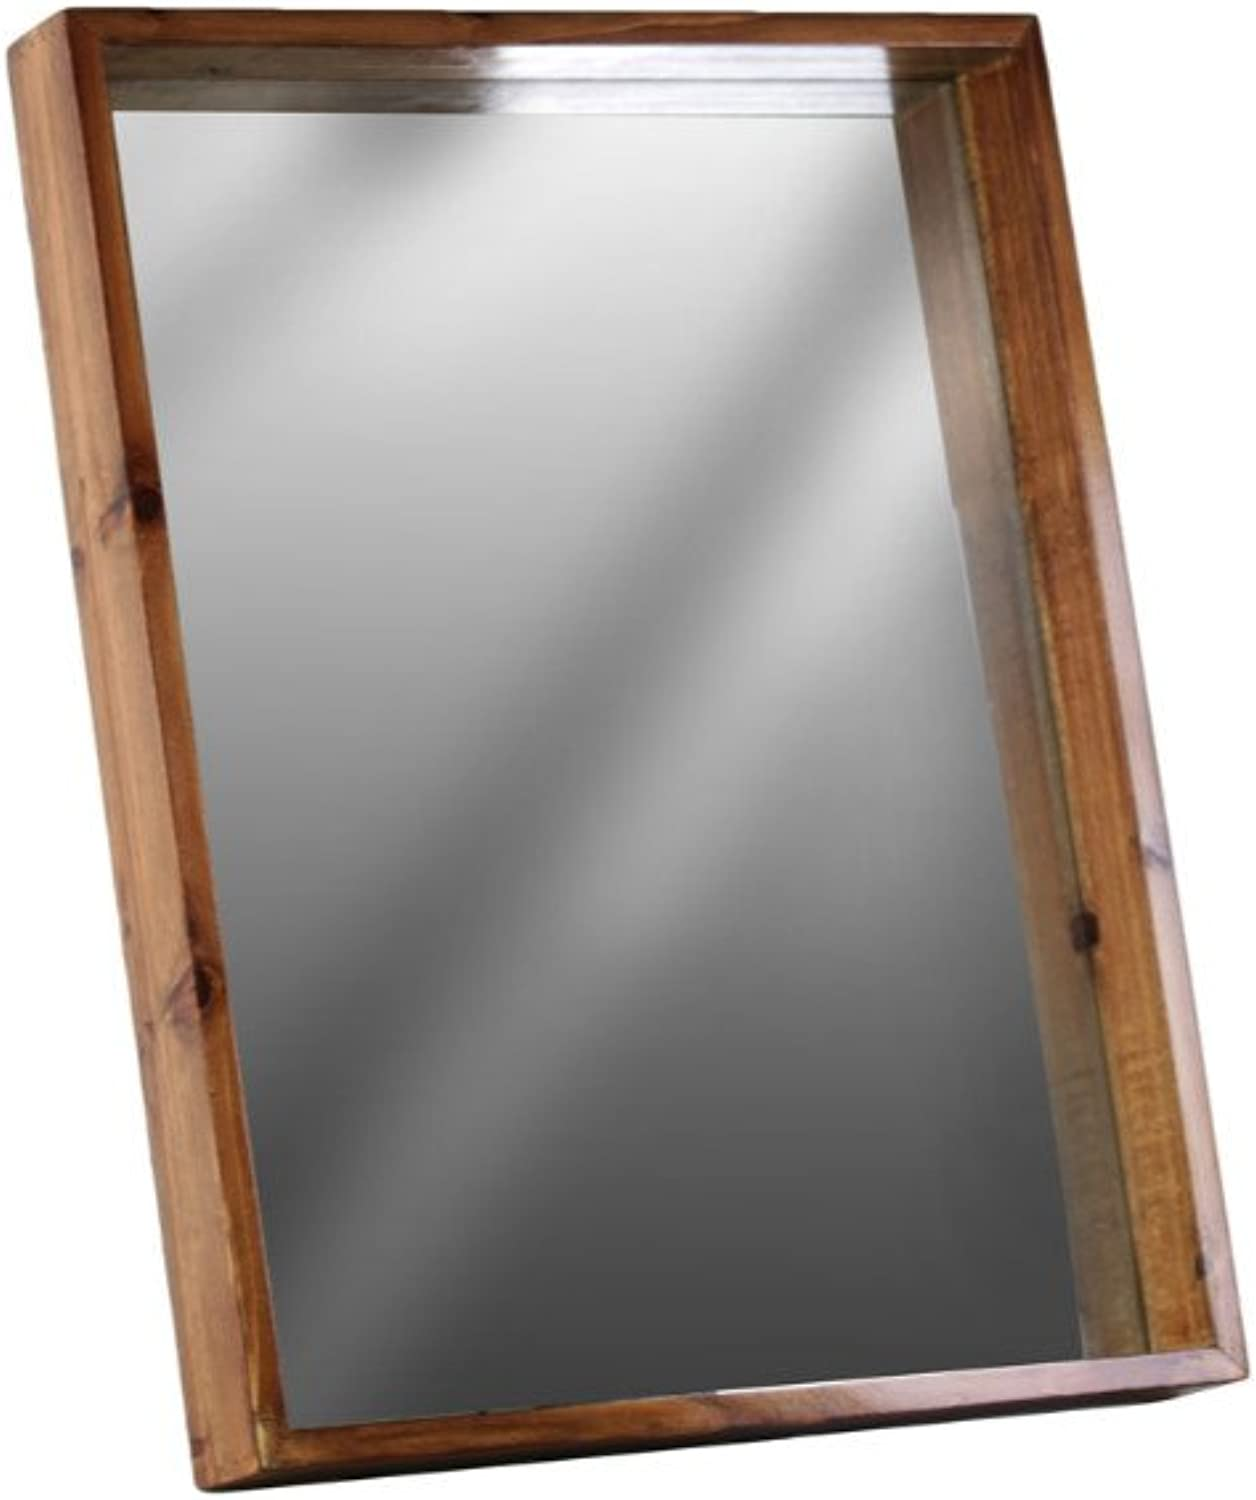 Benzara Rectangular Wall Mirror with Predruding Frame-Small-Brown Accents, One Size